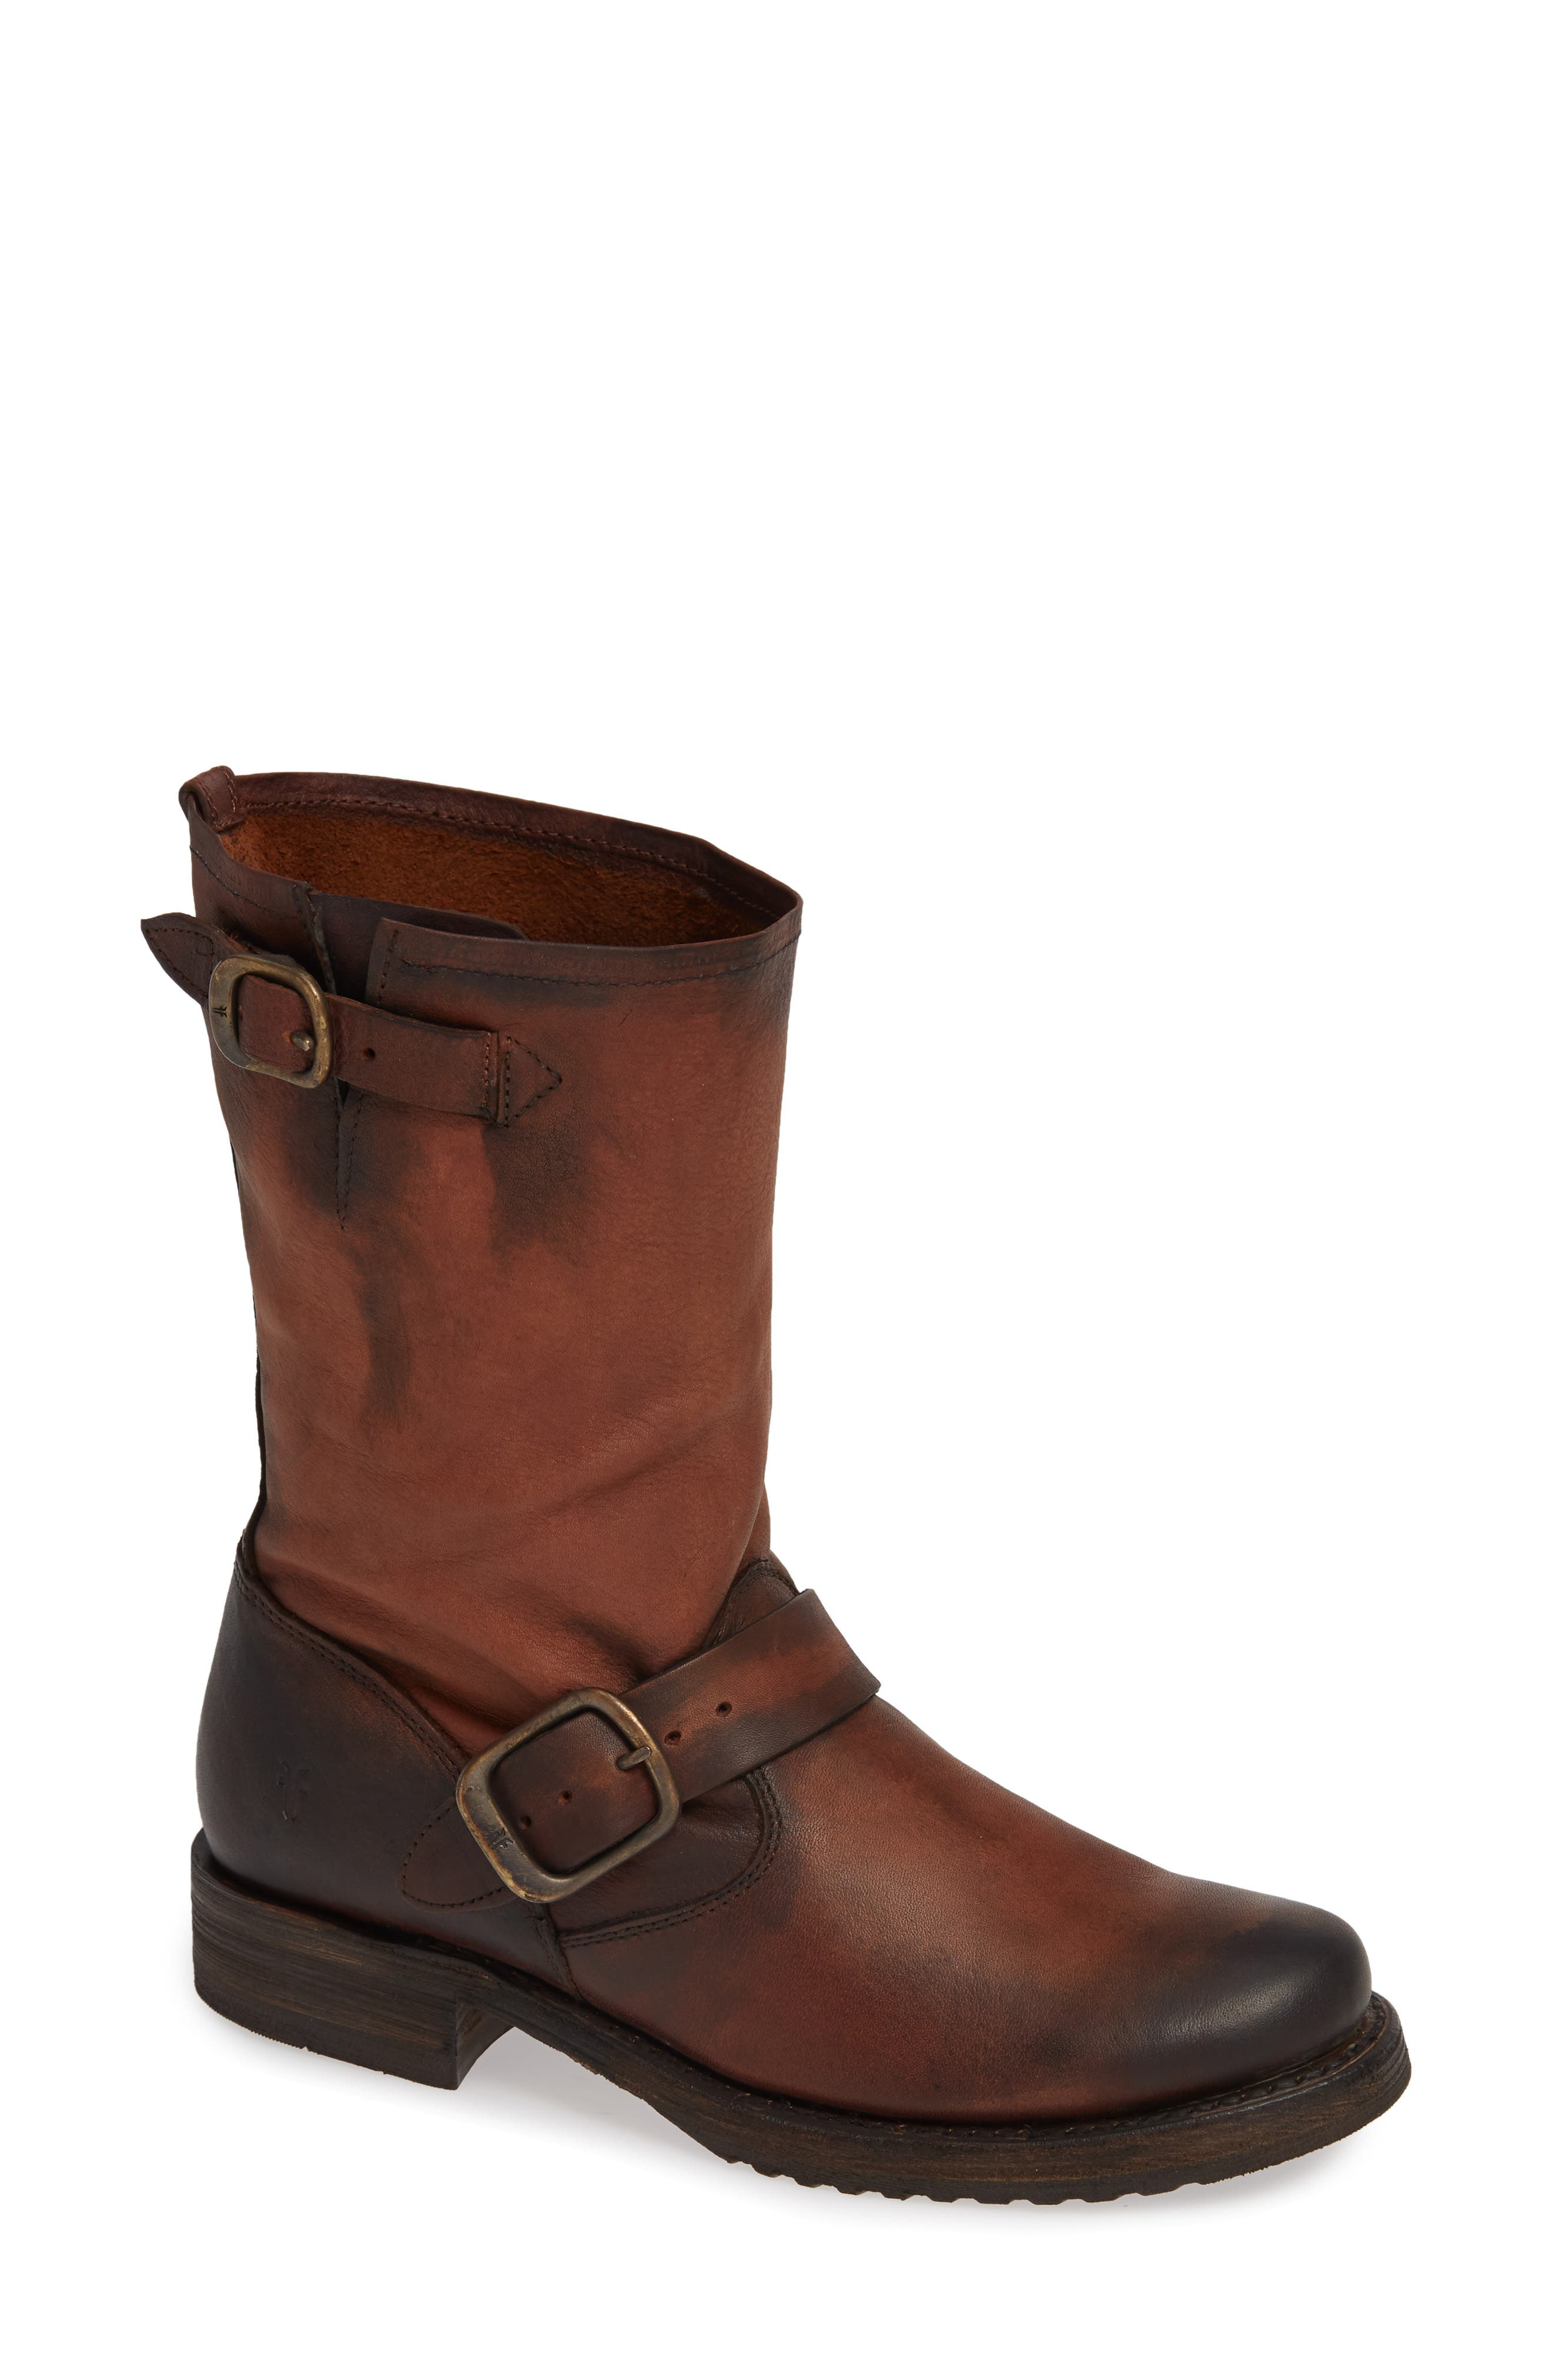 'Veronica' Short Boot,                         Main,                         color, REDWOOD LEATHER